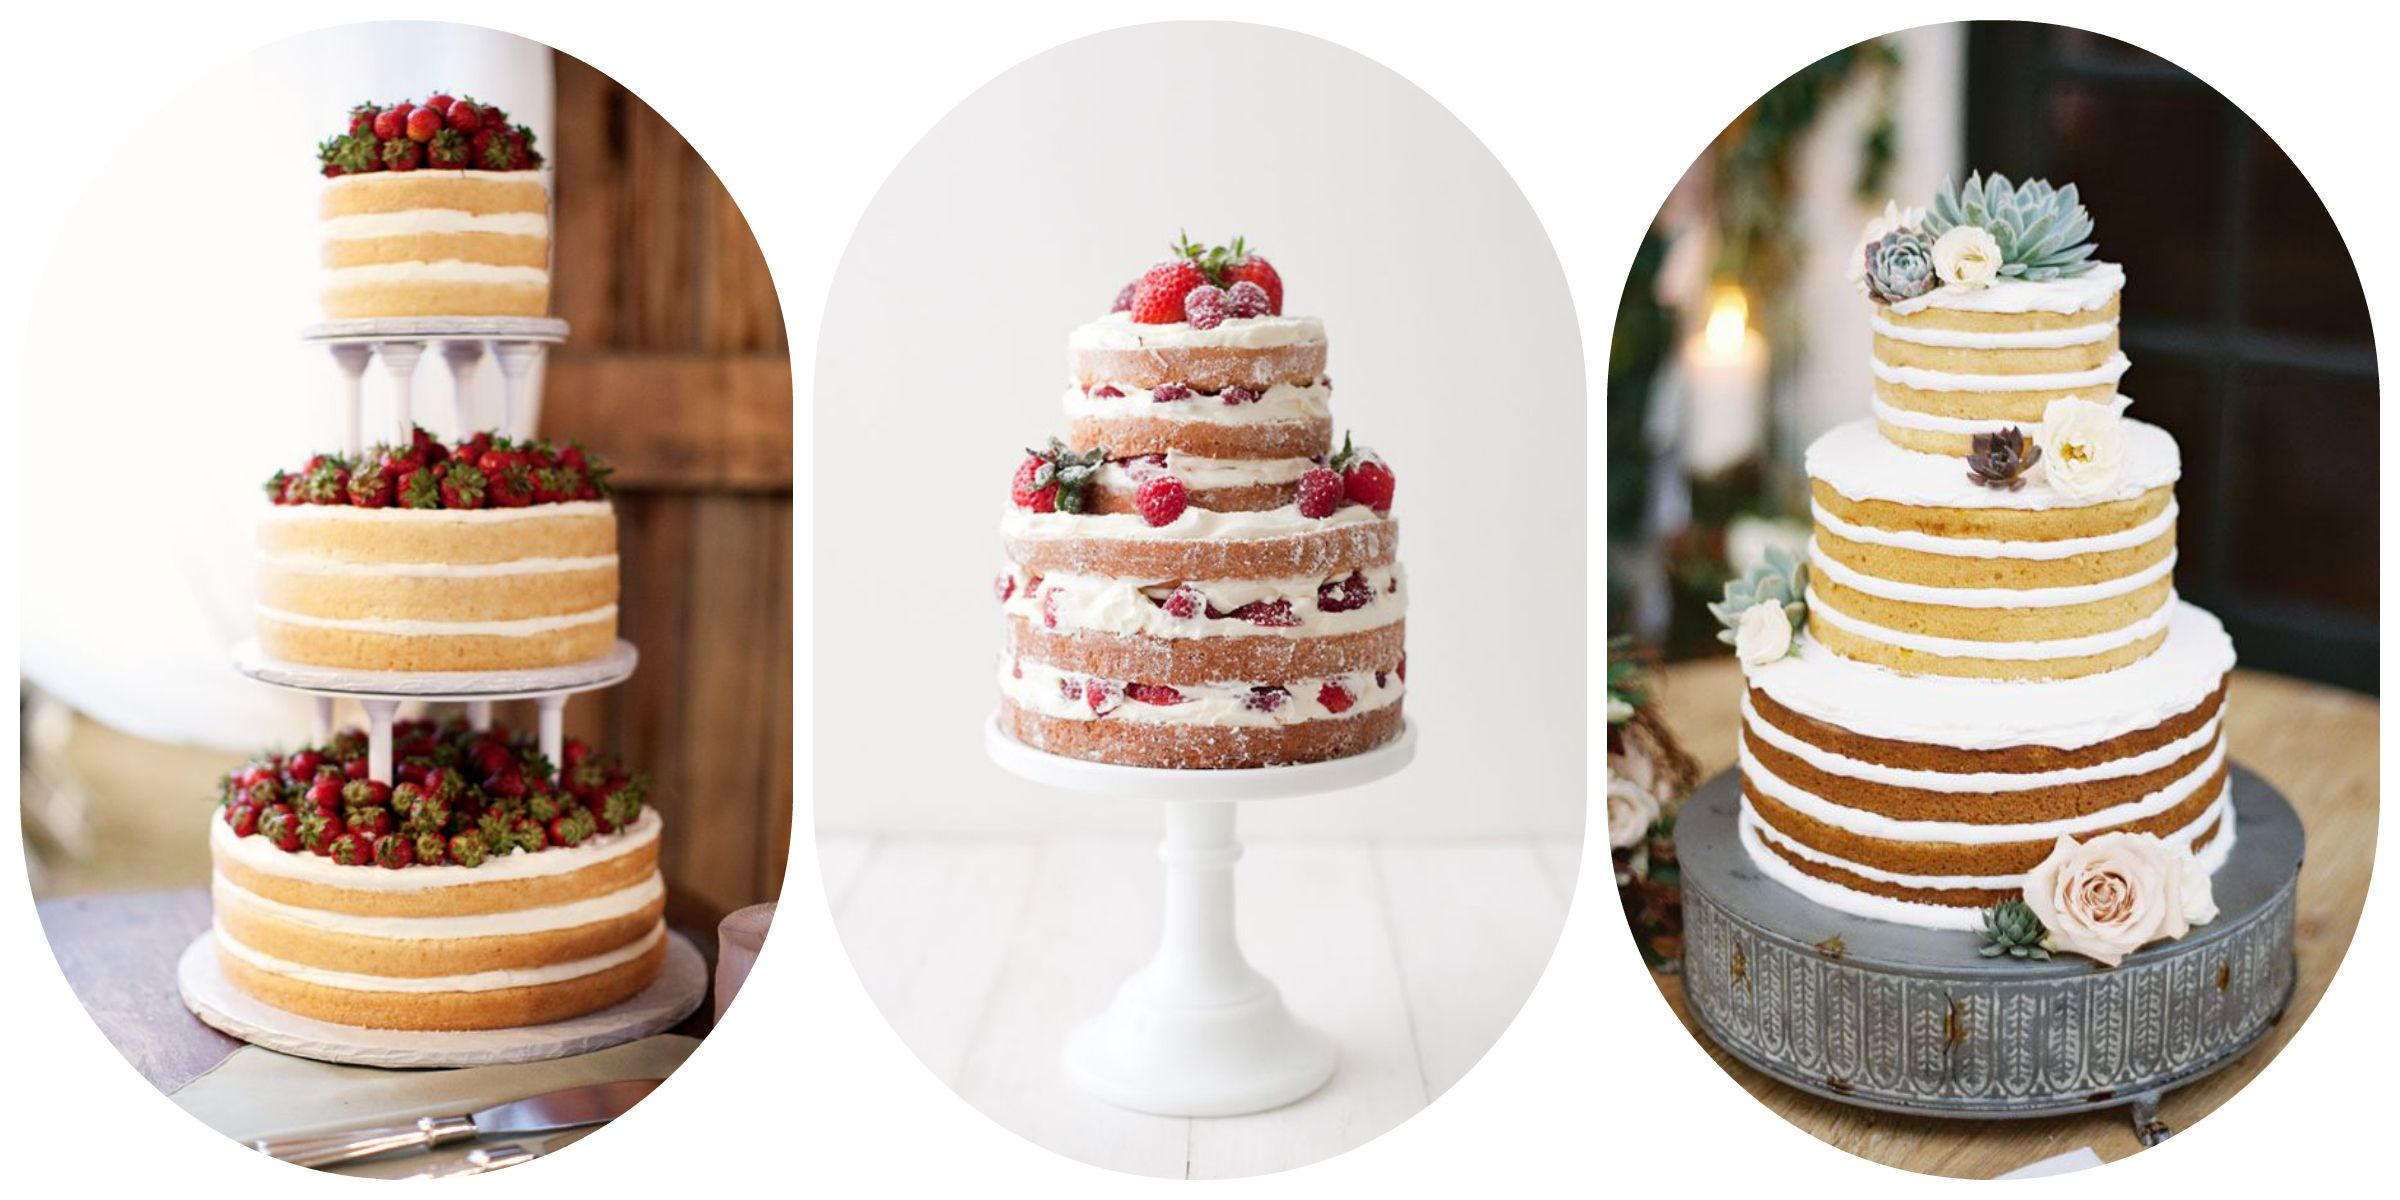 Pin by Morgane Leconte on weeding cake | Pinterest | Wedding trends ...